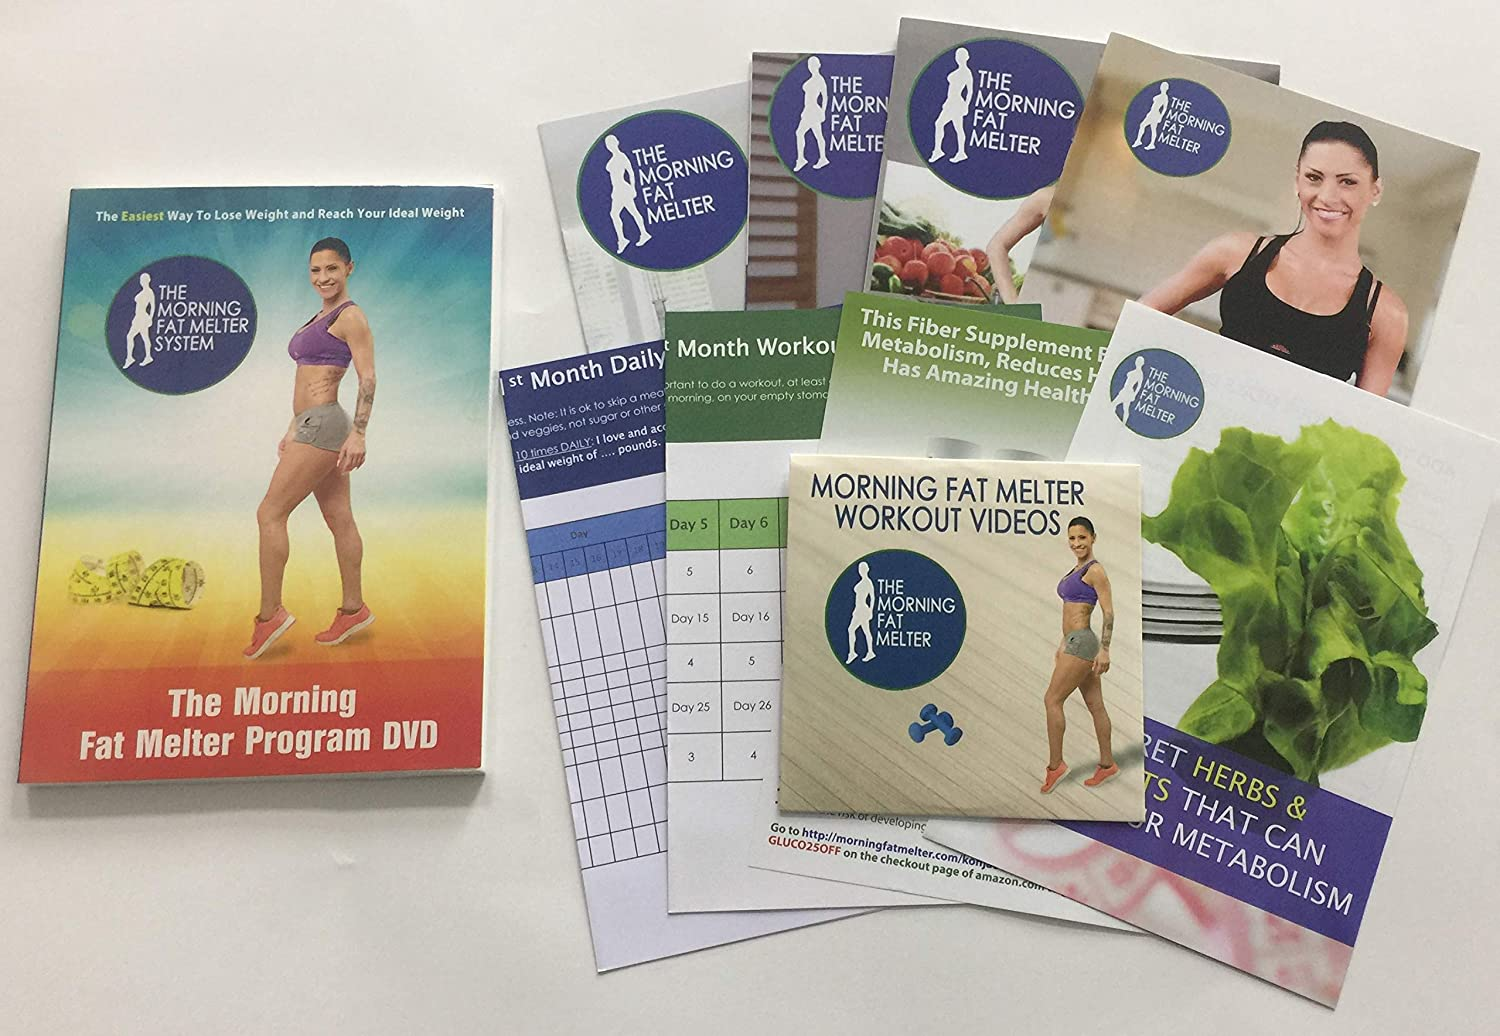 Morning Fat Melter Workout Dvd For Women Lose At Least 3 Pounds Week With Our Weight Loss Program 11 Workout Videos 30 Days Meal Plan 5